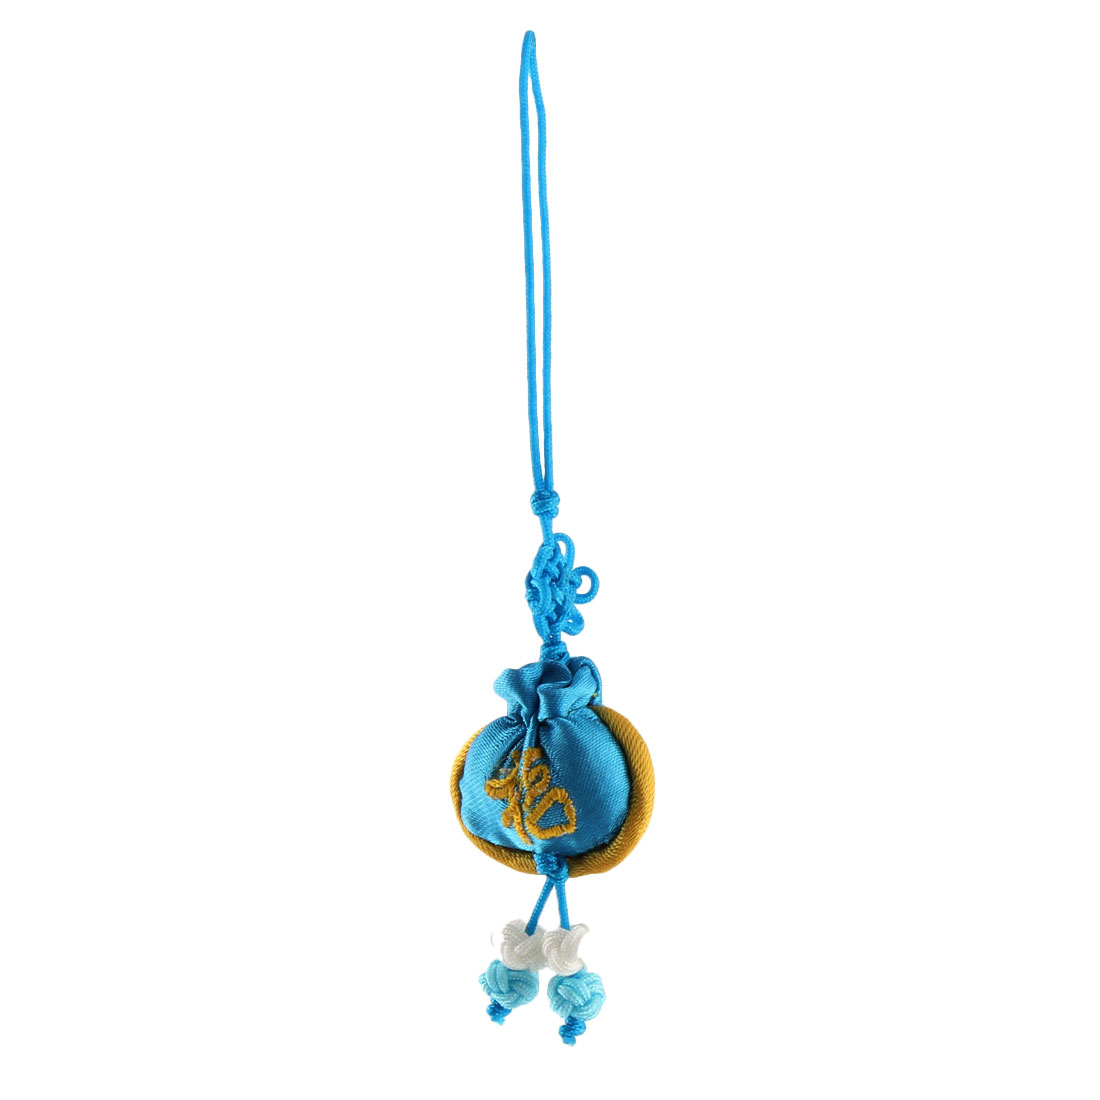 Household Mini Chinese Embroidery Luck Hanging Sachet Pendant Knot Sky Blue